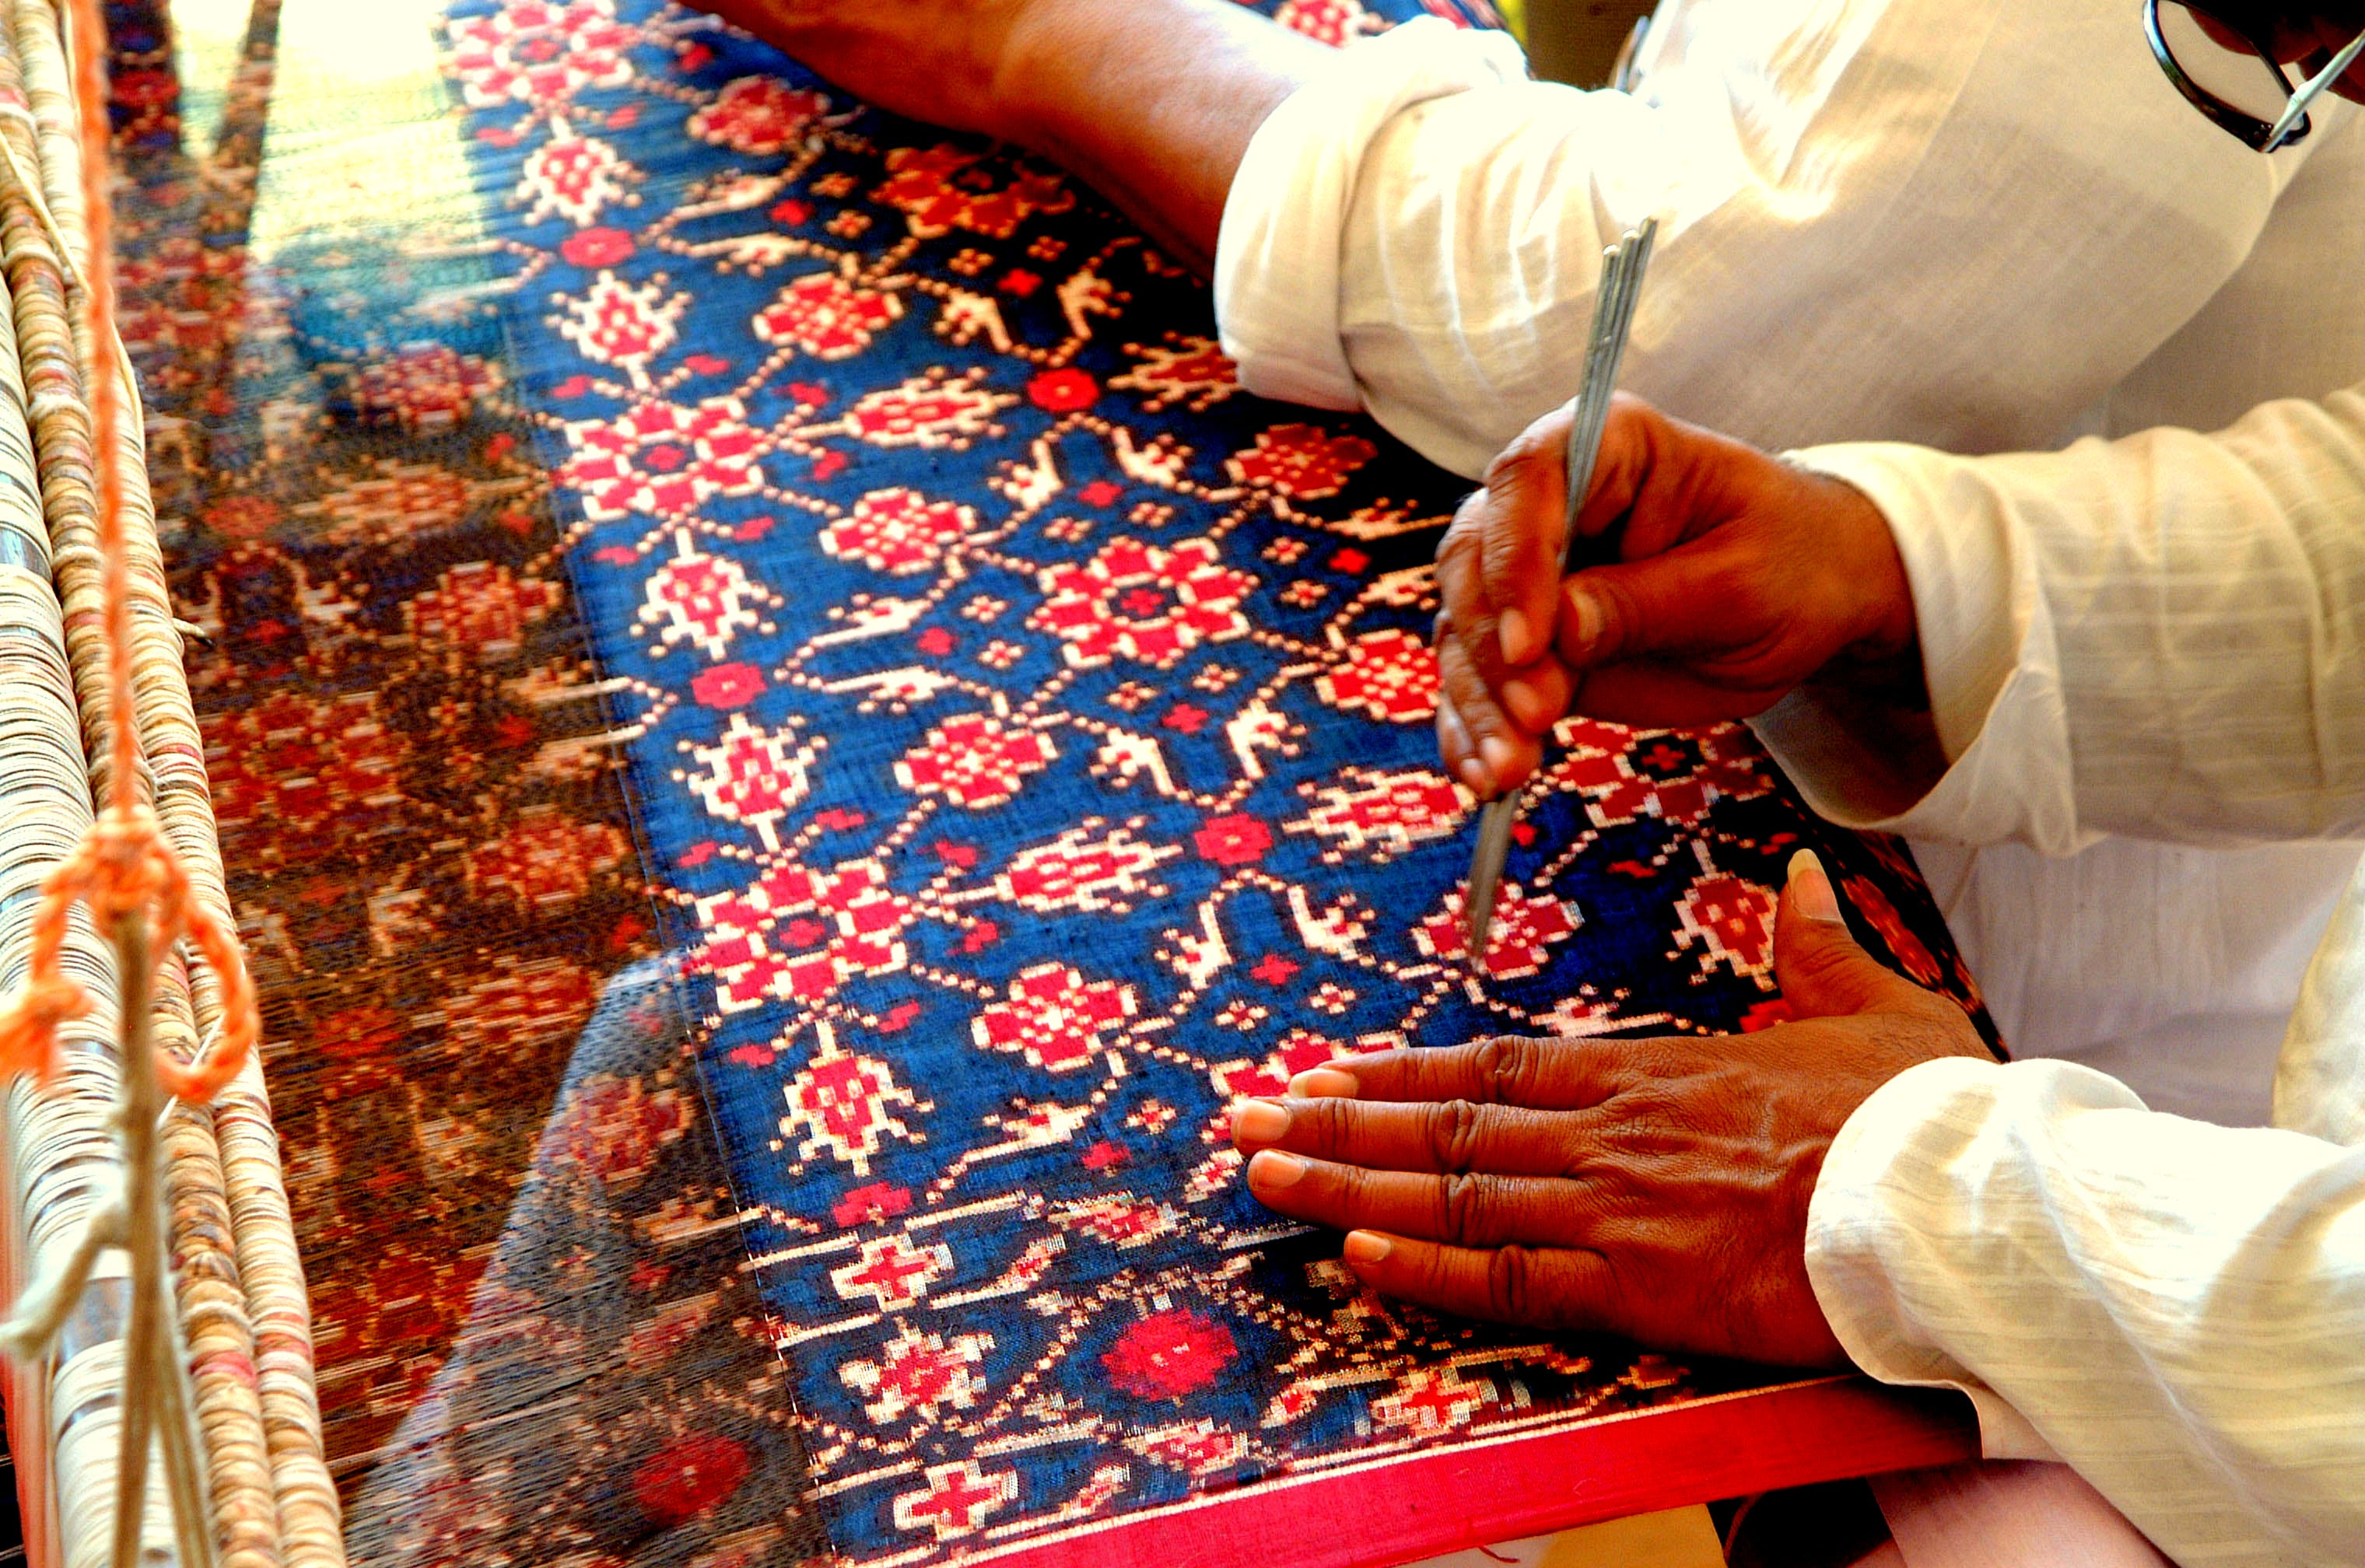 Hand,Weaving,Textile,Finger,Art,Pattern,Nail,Carpet,Tradition